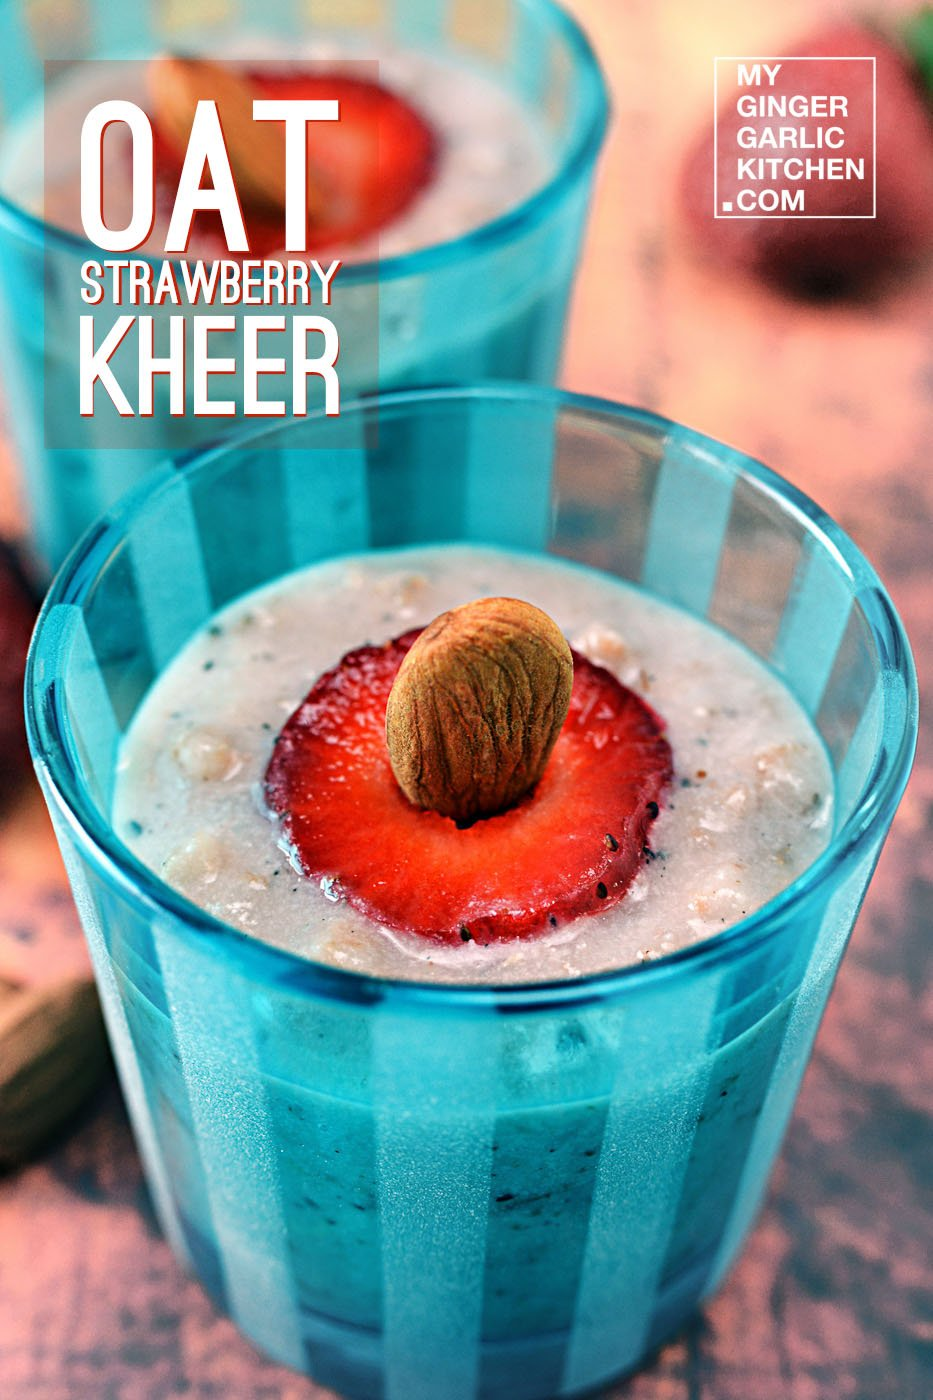 Image of Oat Strawberry Kheer – Oat Strawberry Pudding [Dessert]